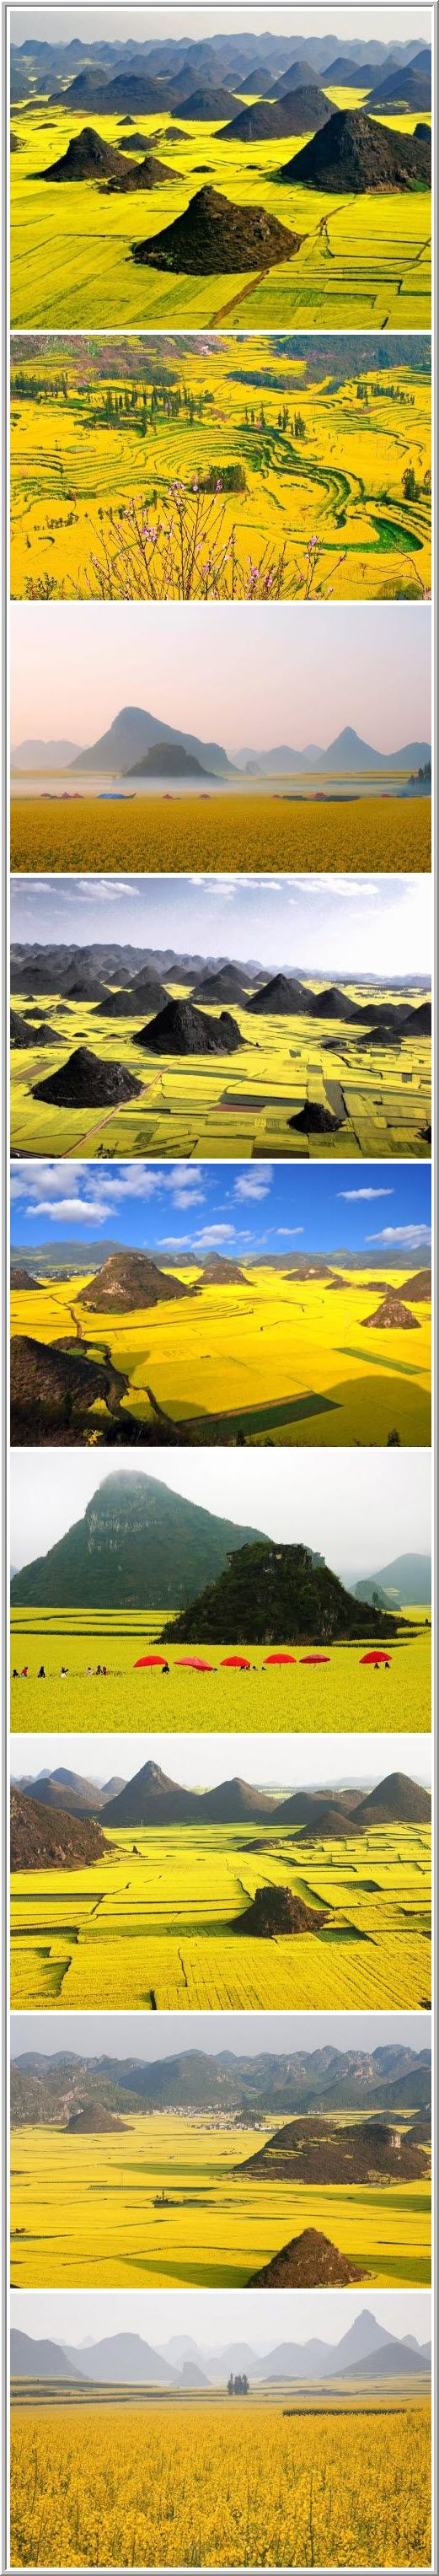 Flowering canola - City of Huangshan, located in eastern China